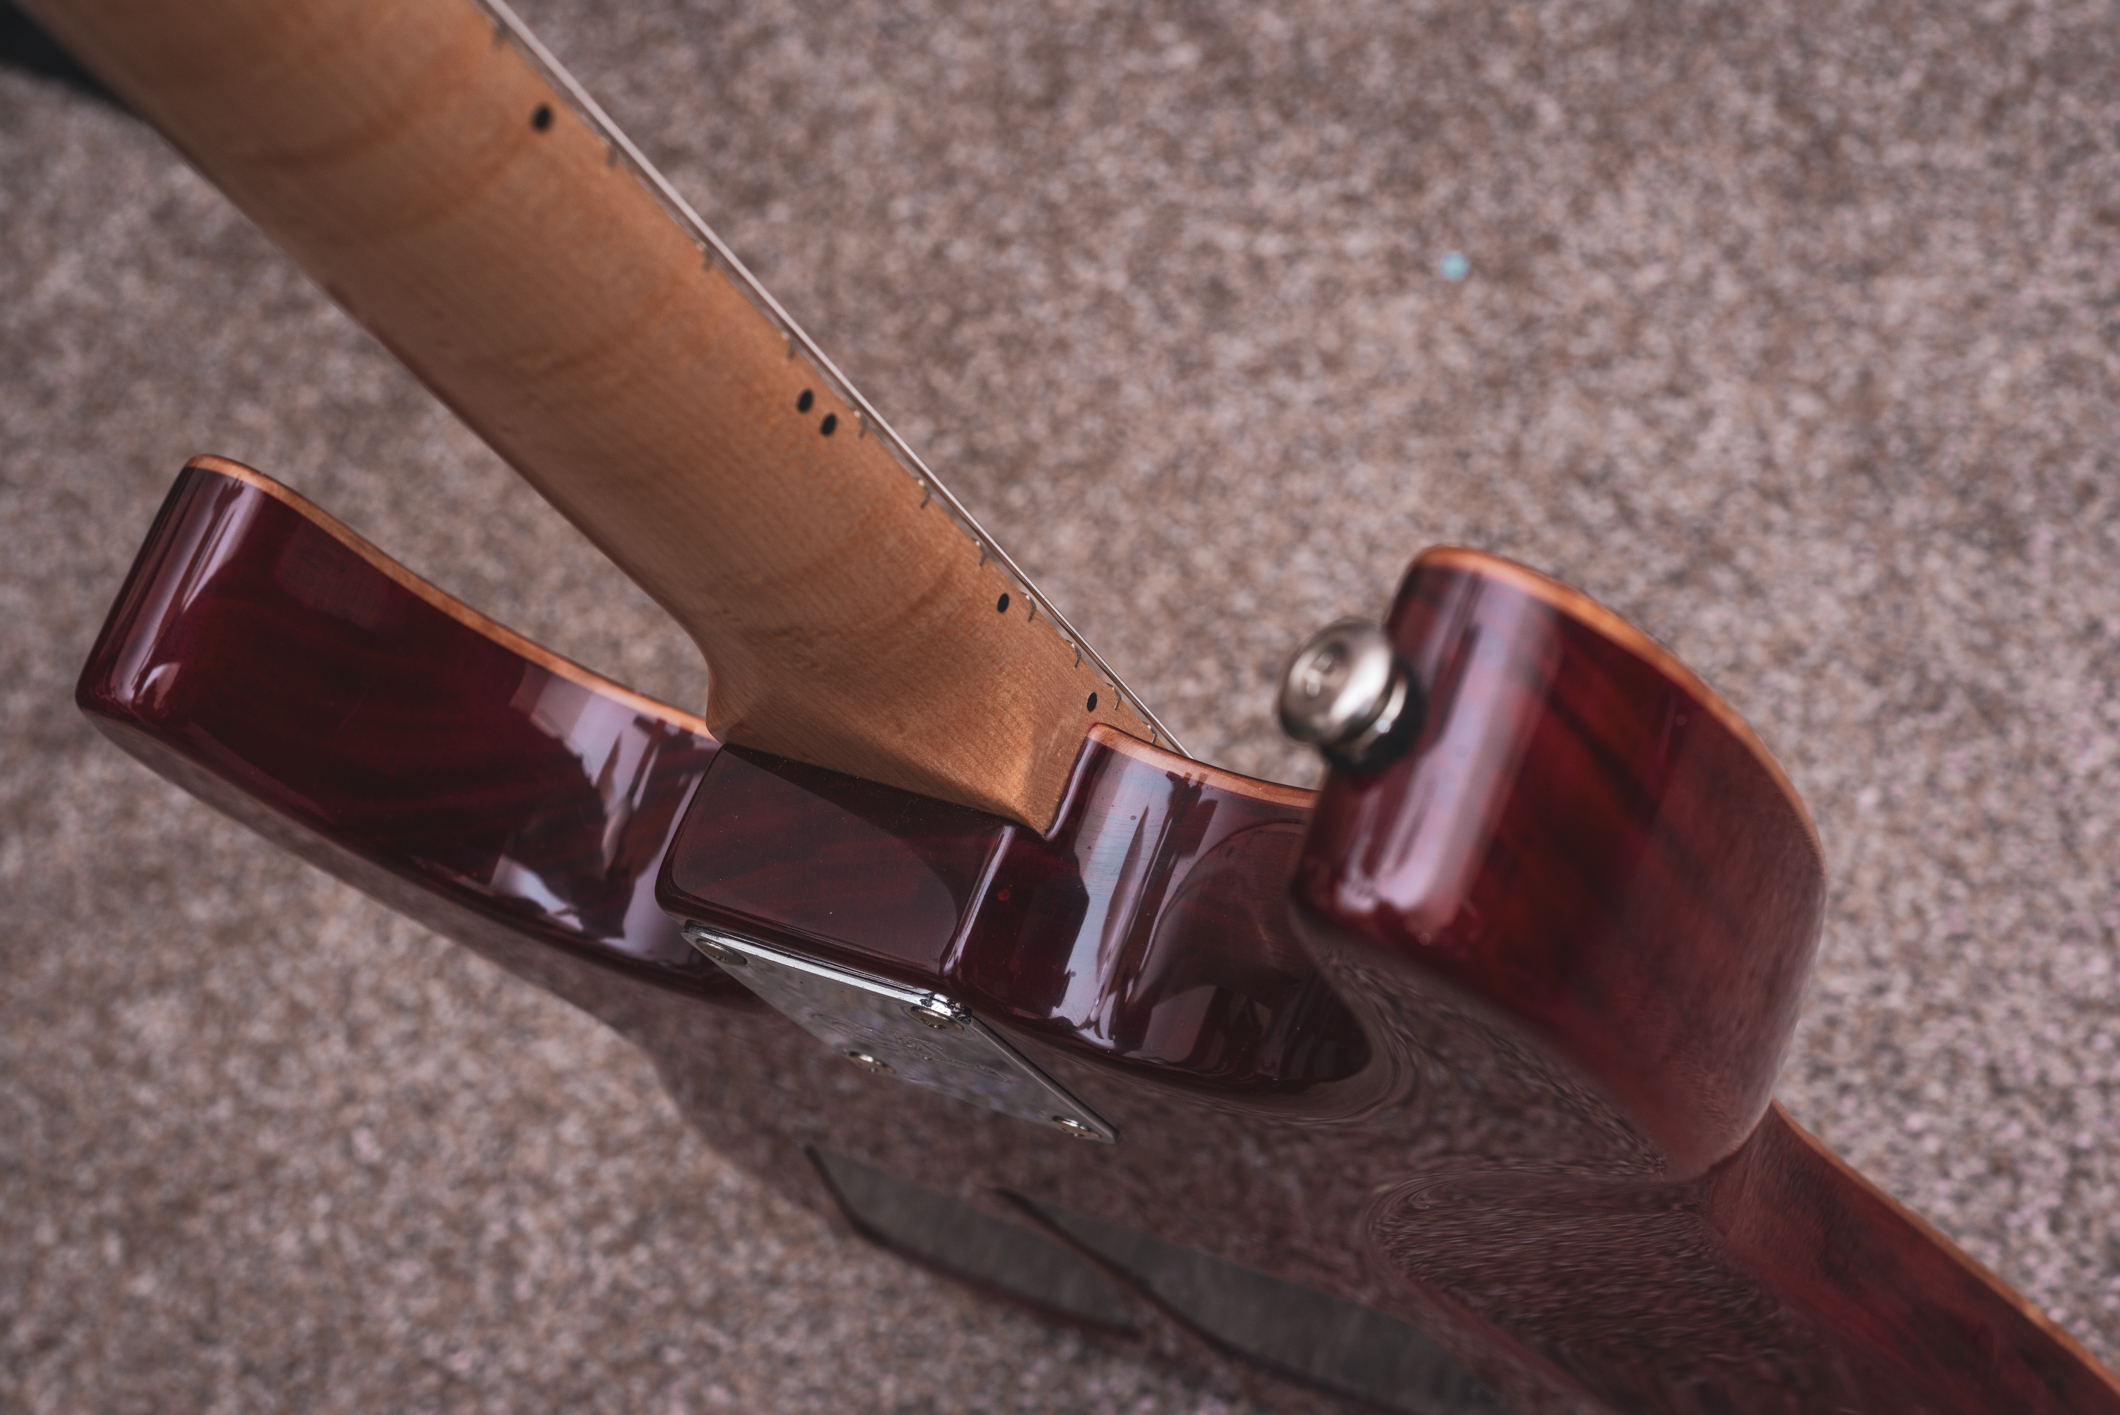 The mahogany body is beautifully figured in its own right, though not as flashy as the maple pieces.